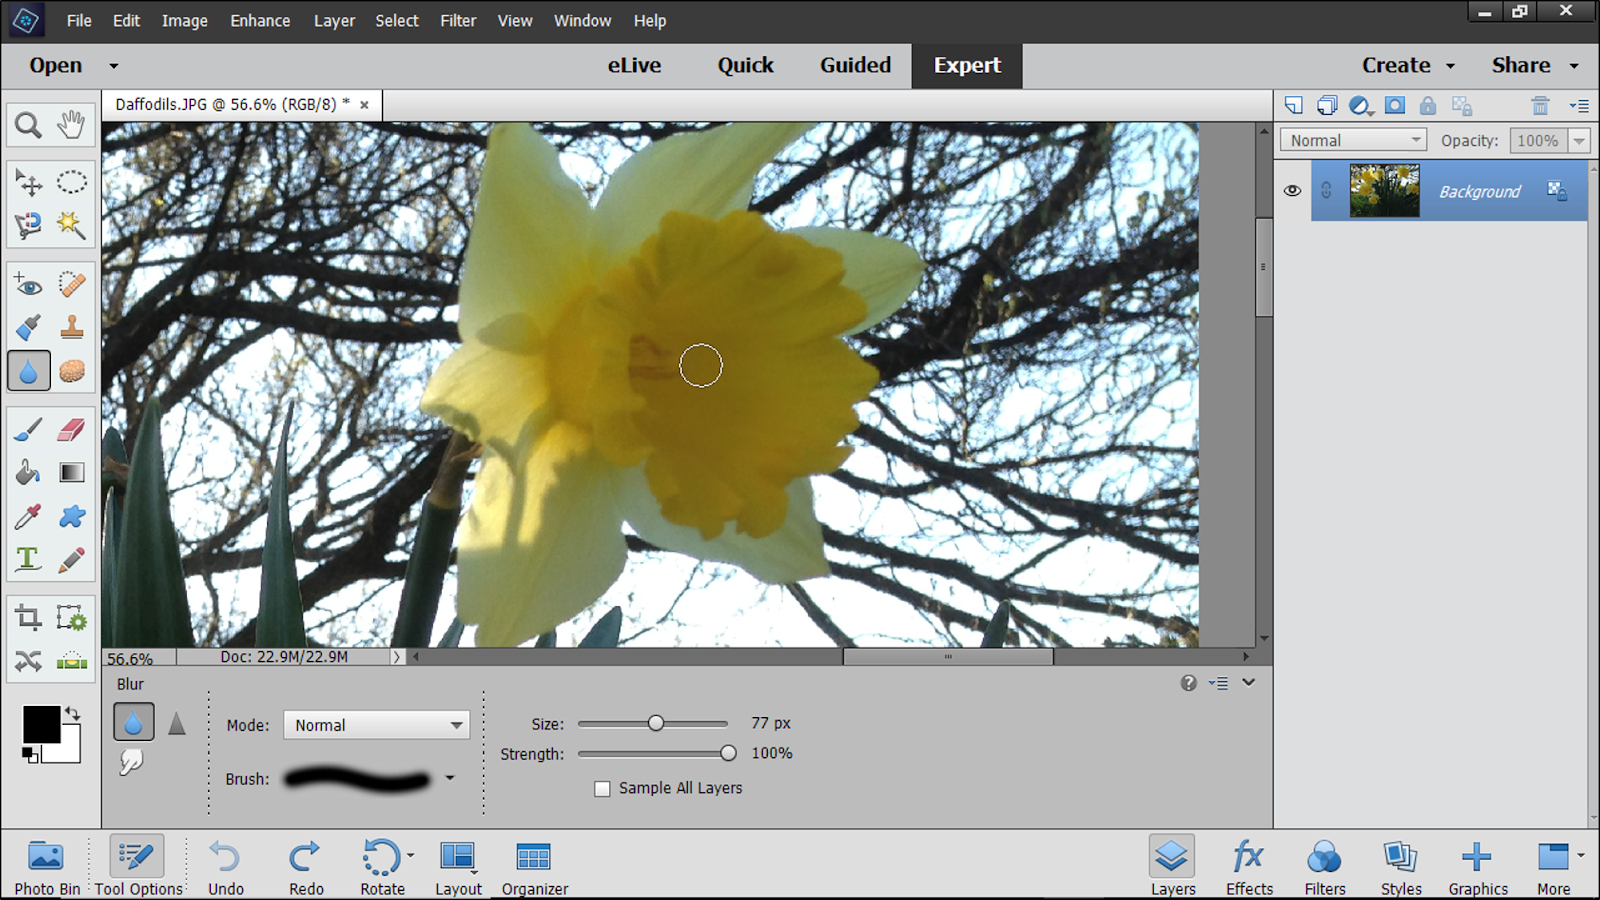 photoshop elements 2018 free download full version